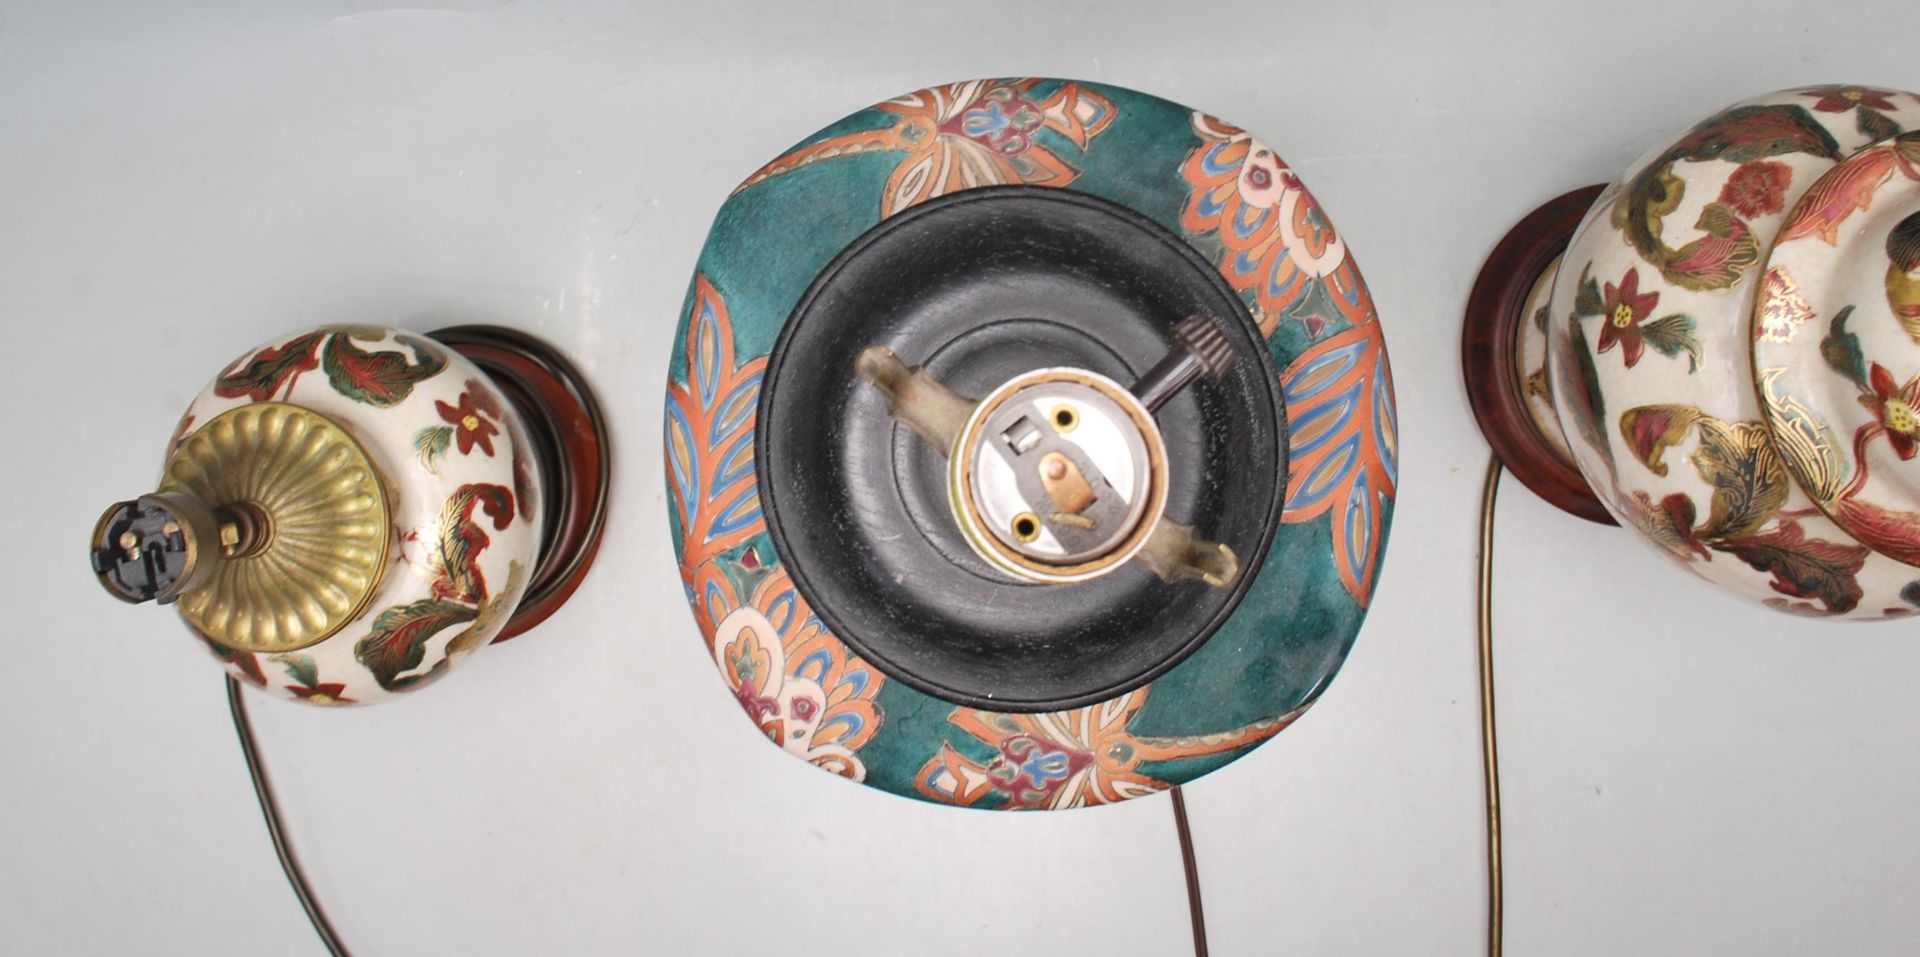 COLLECTION OF KUTANI / FAMILLE ROSE TABLE LAMPS - Image 5 of 7